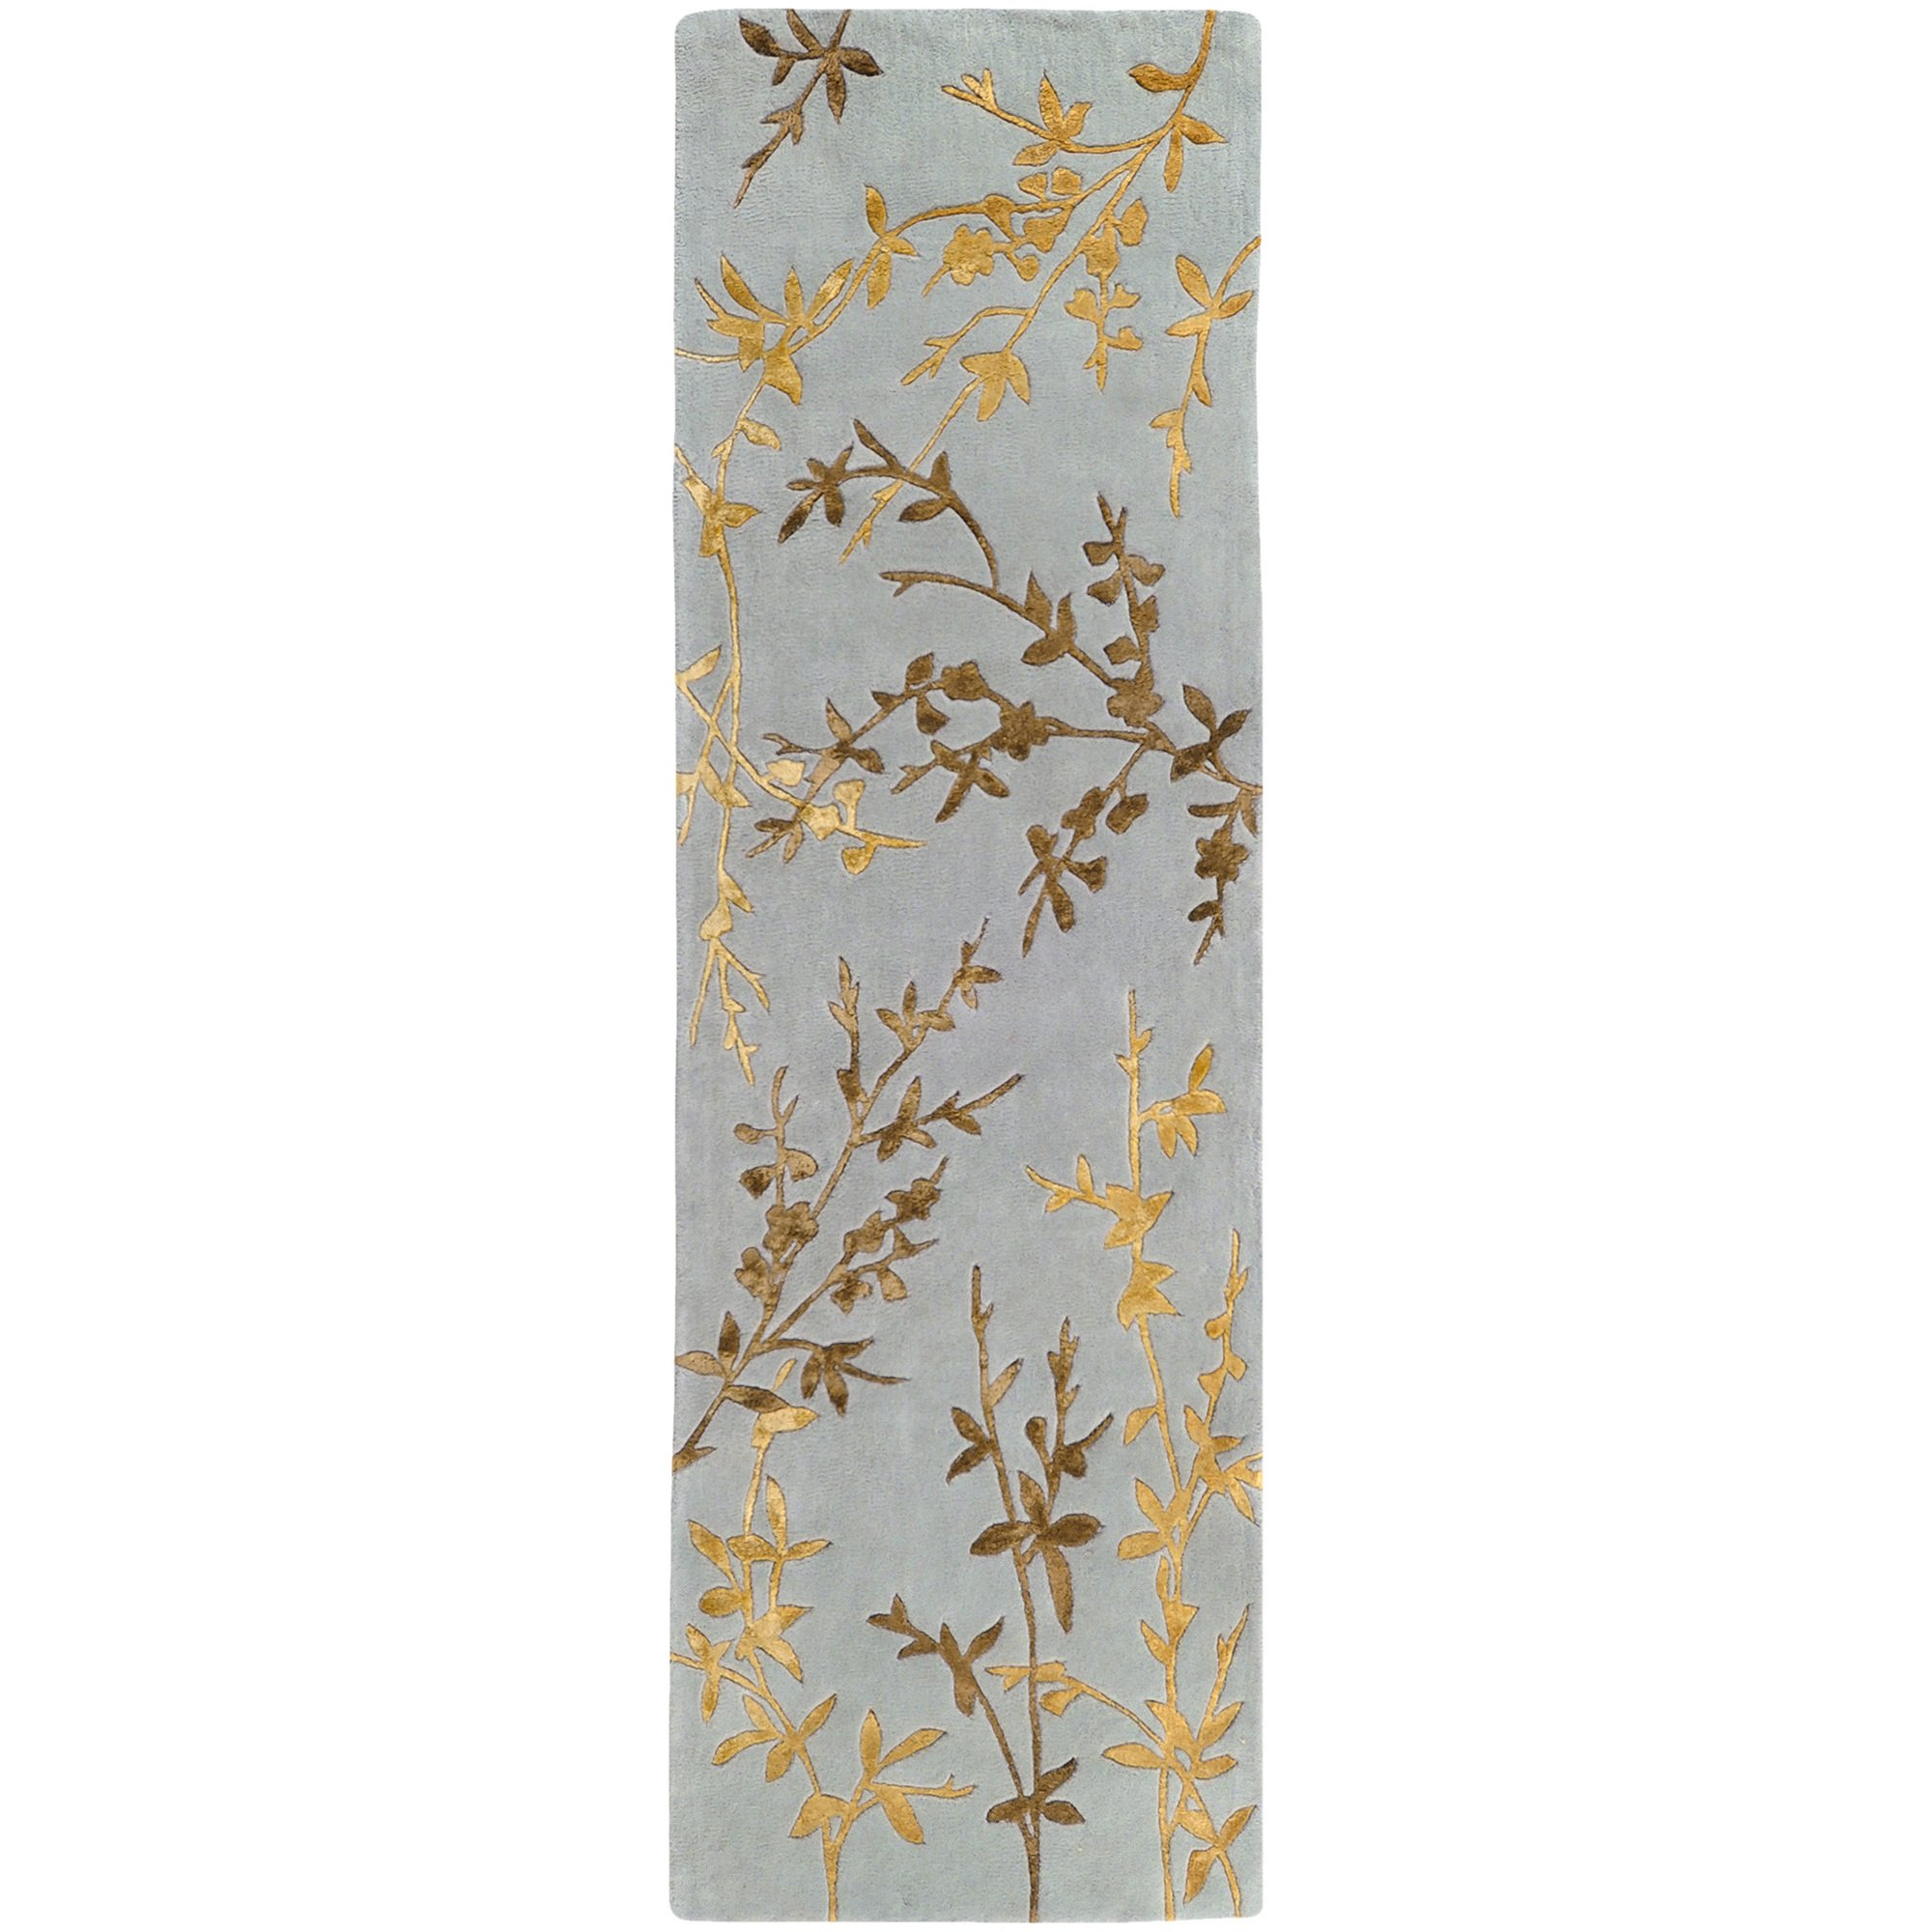 Surya Tamira TAM-1000 Transitional Hand Tufted 100% Wool / Viscose Dove Gray 2'6'' x 8' Floral Runner by Surya